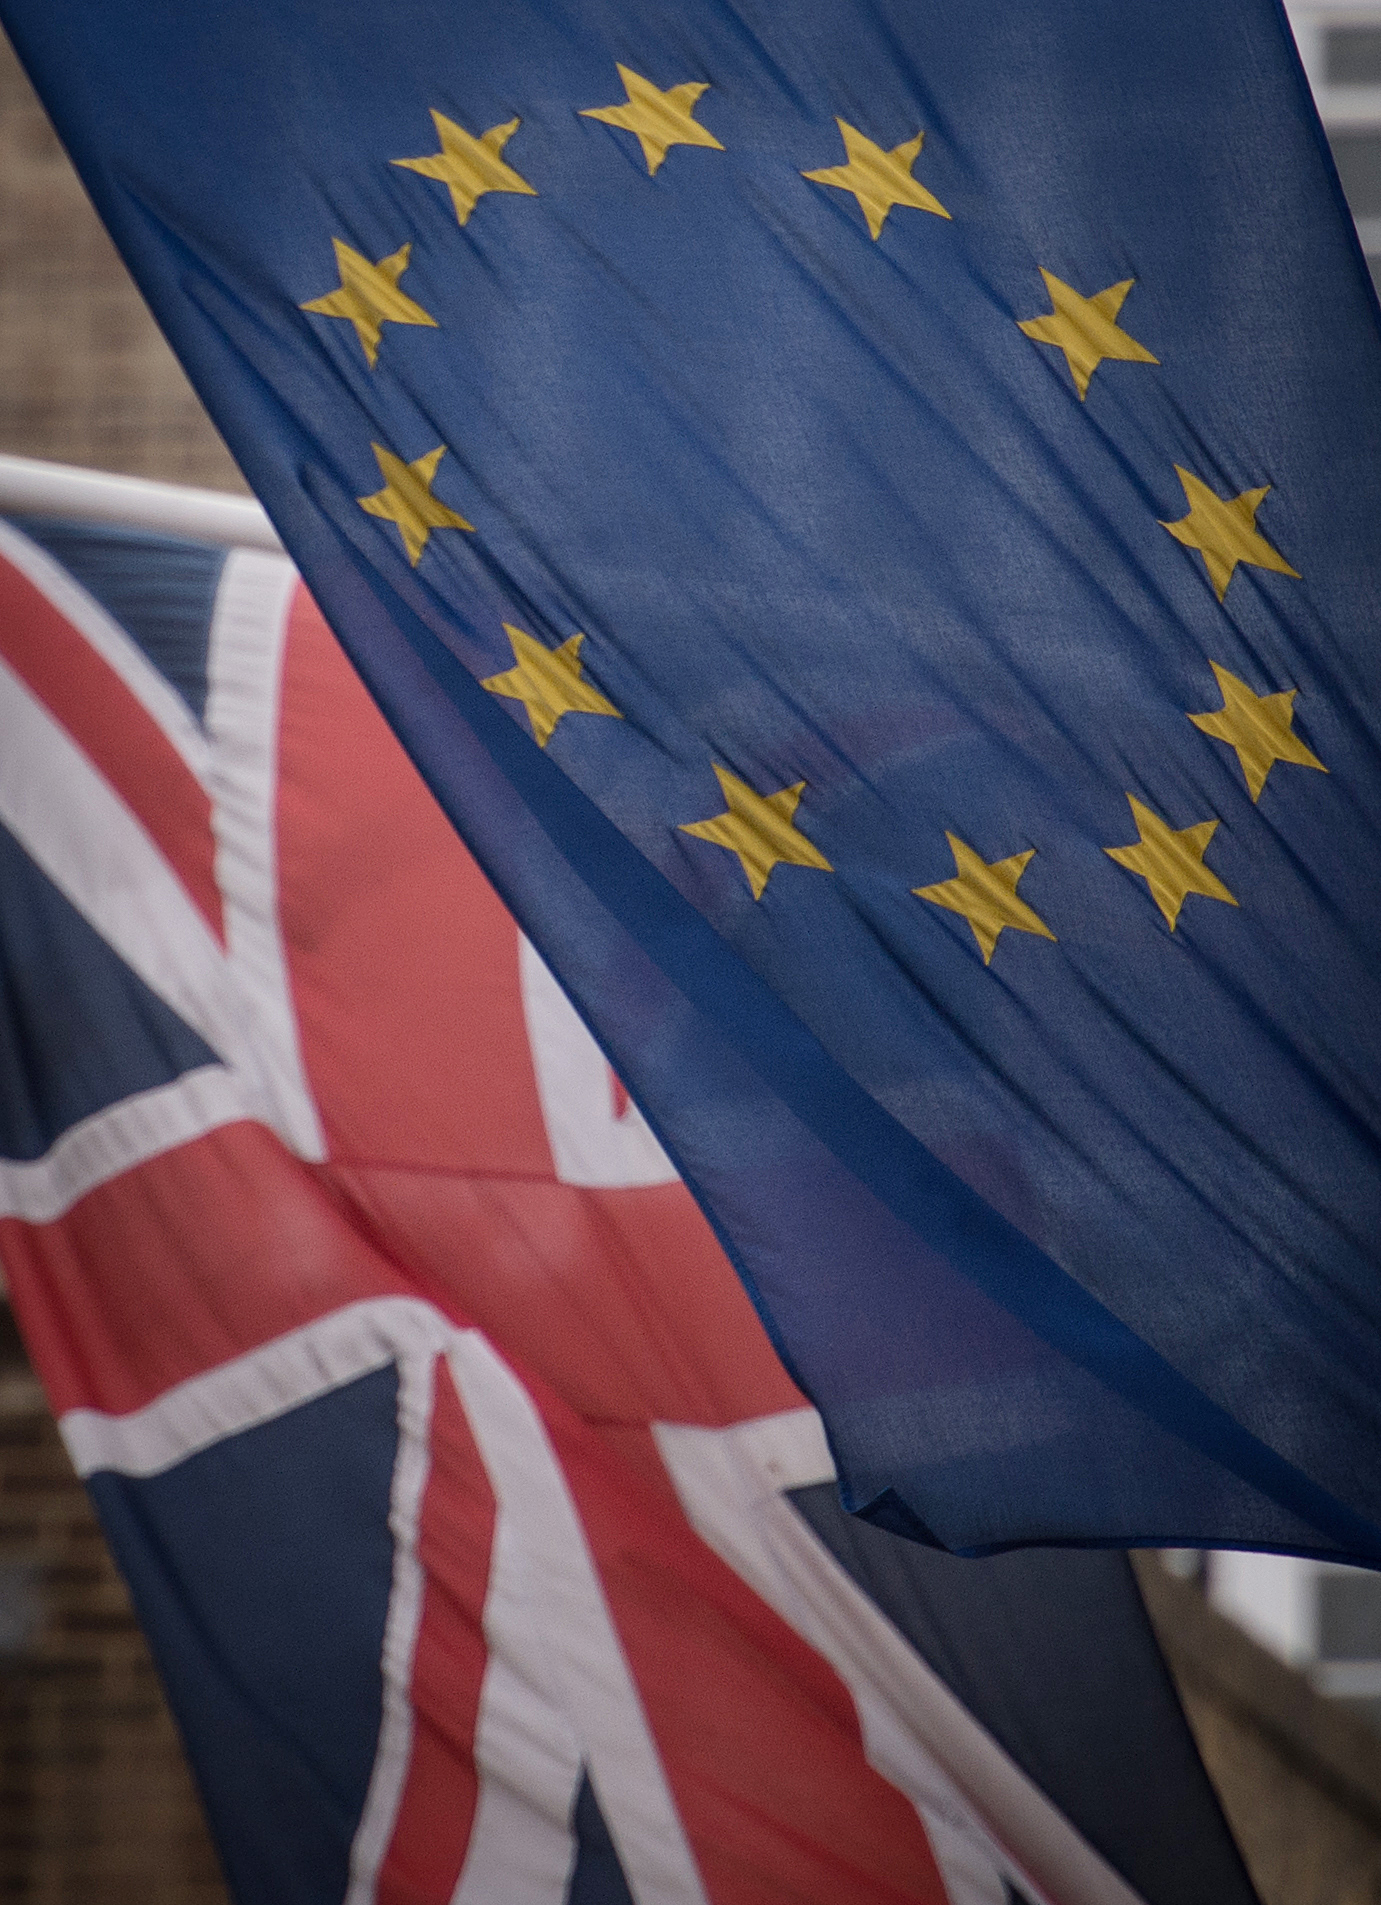 Embargoed to 1300 Thursday May 24File photo dated 17/02/2016 of EU and UK flags flying. The UK may be forced to remain in the EU's customs union beyond 2020 because of the Government's failure to set out alternative plans, MPs have said. PRESS ASS